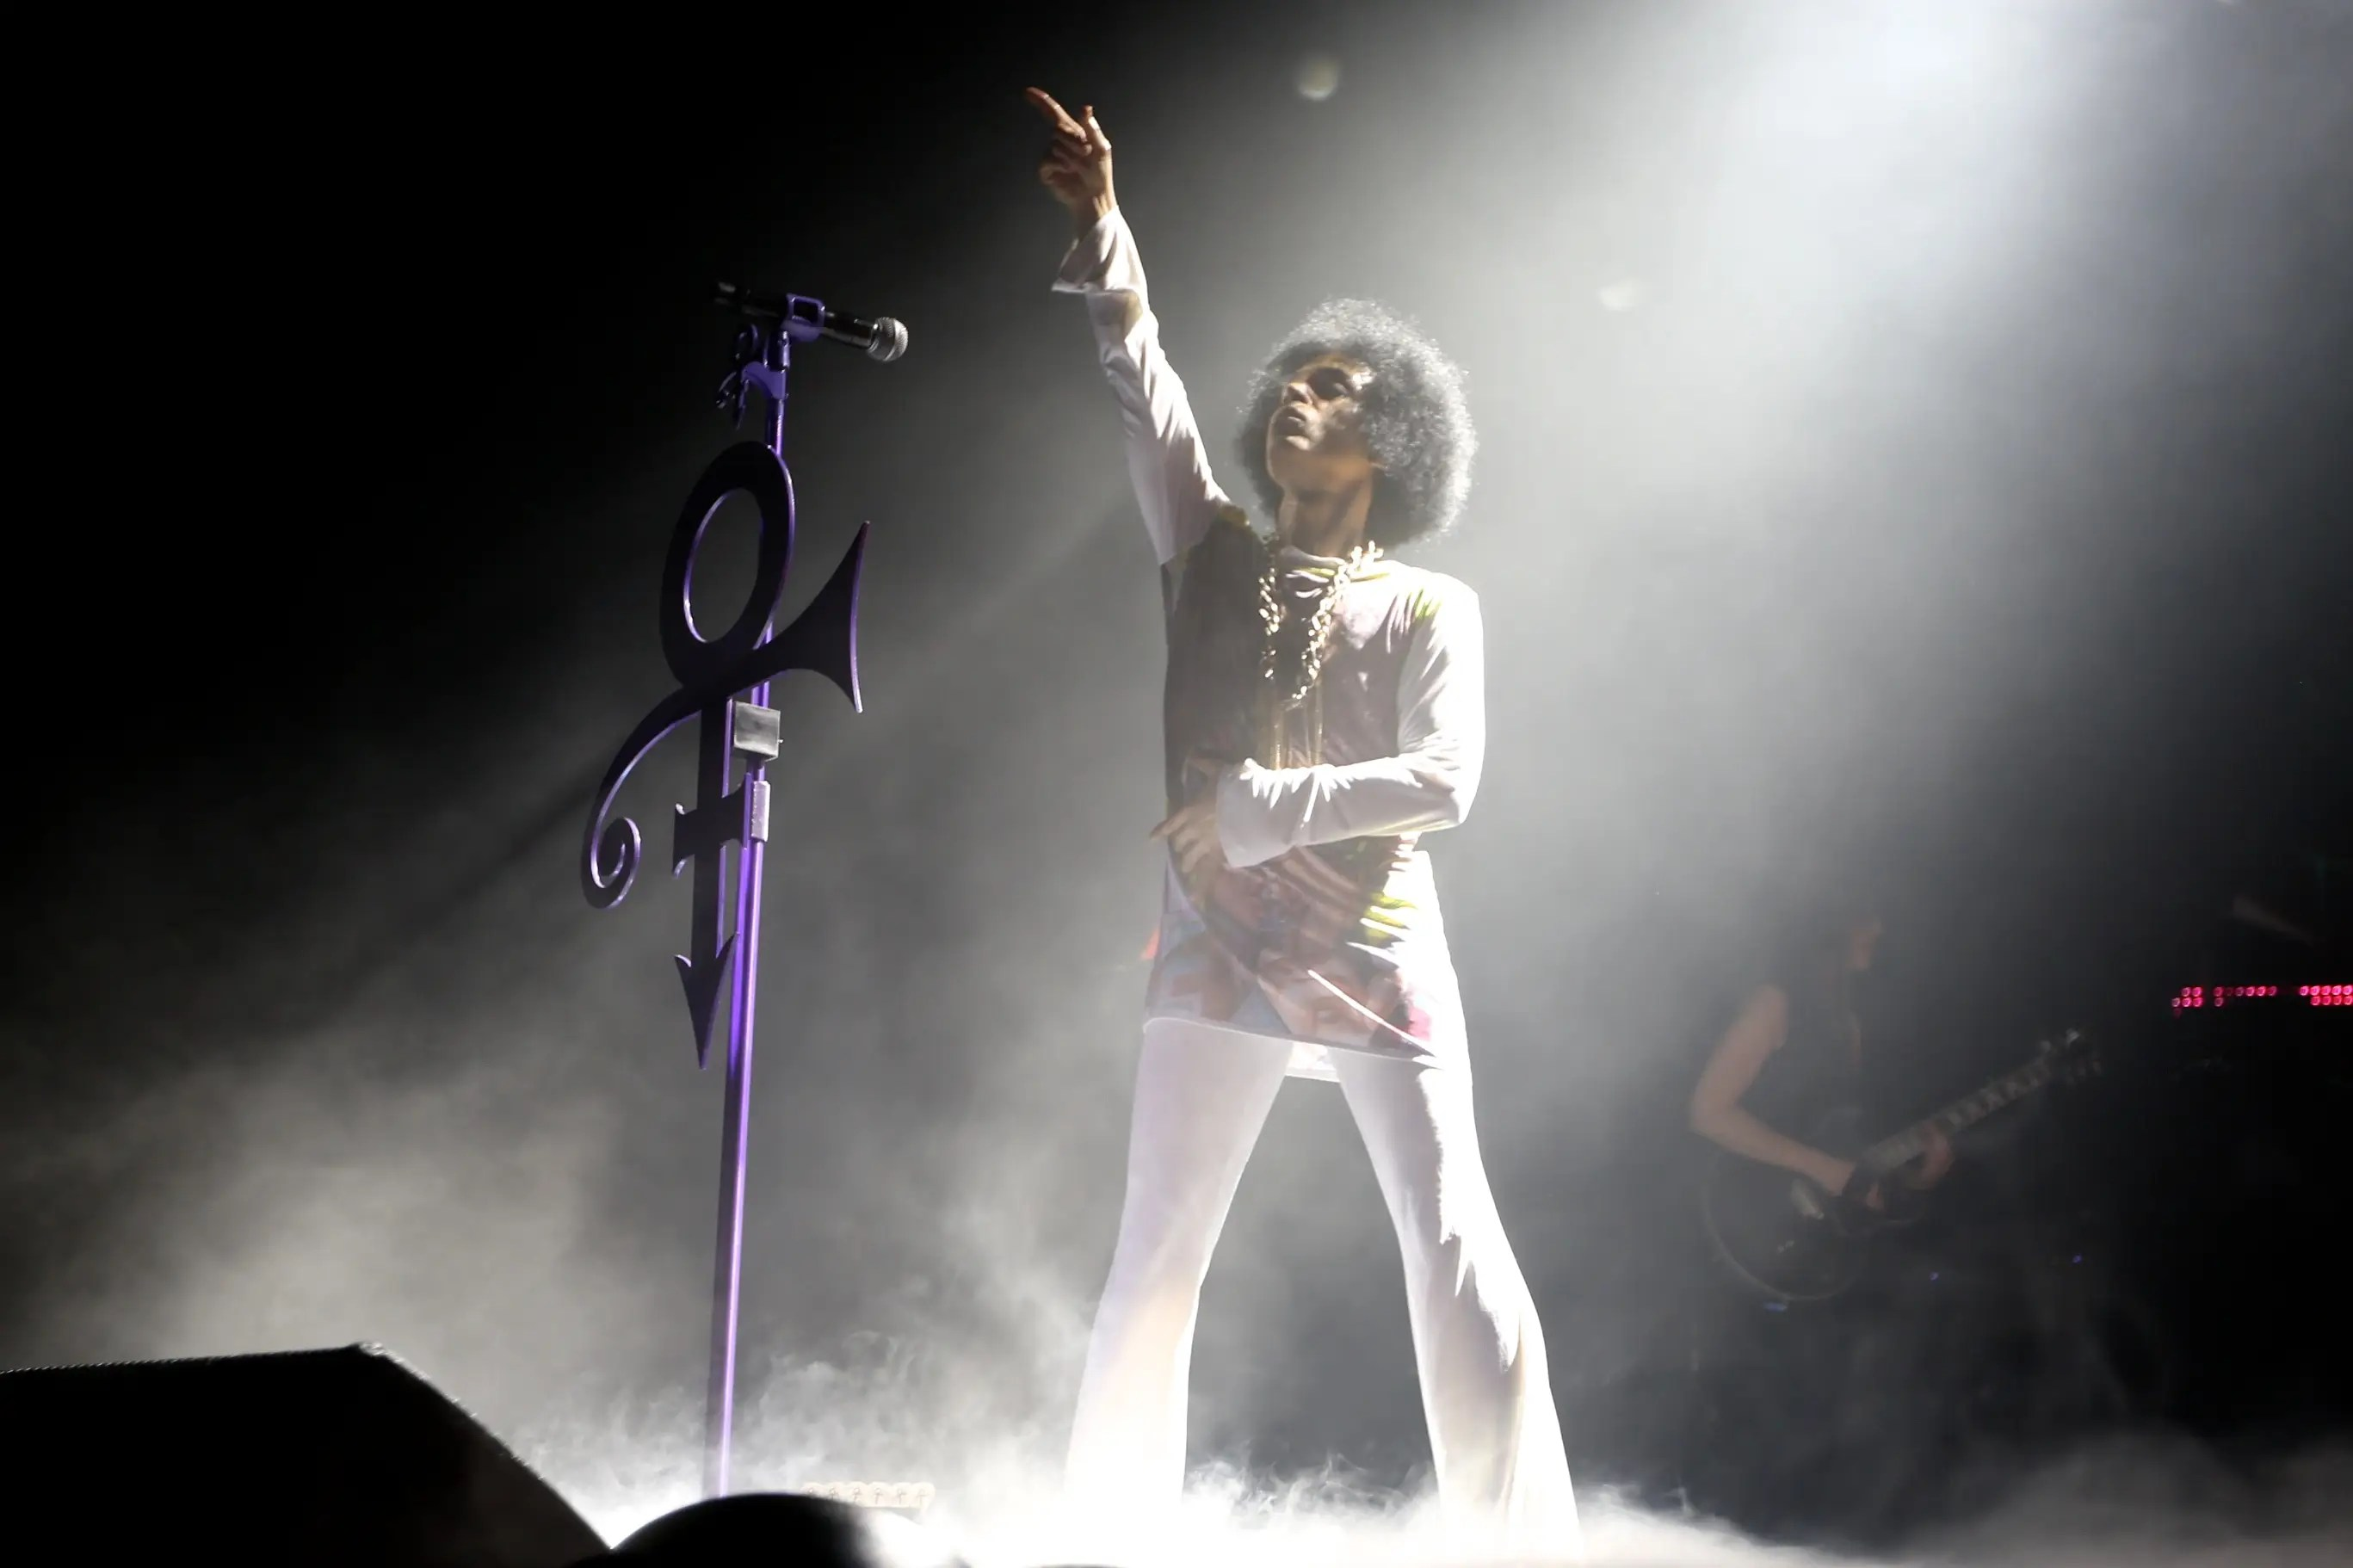 New Prince photo   credit   NPG Records